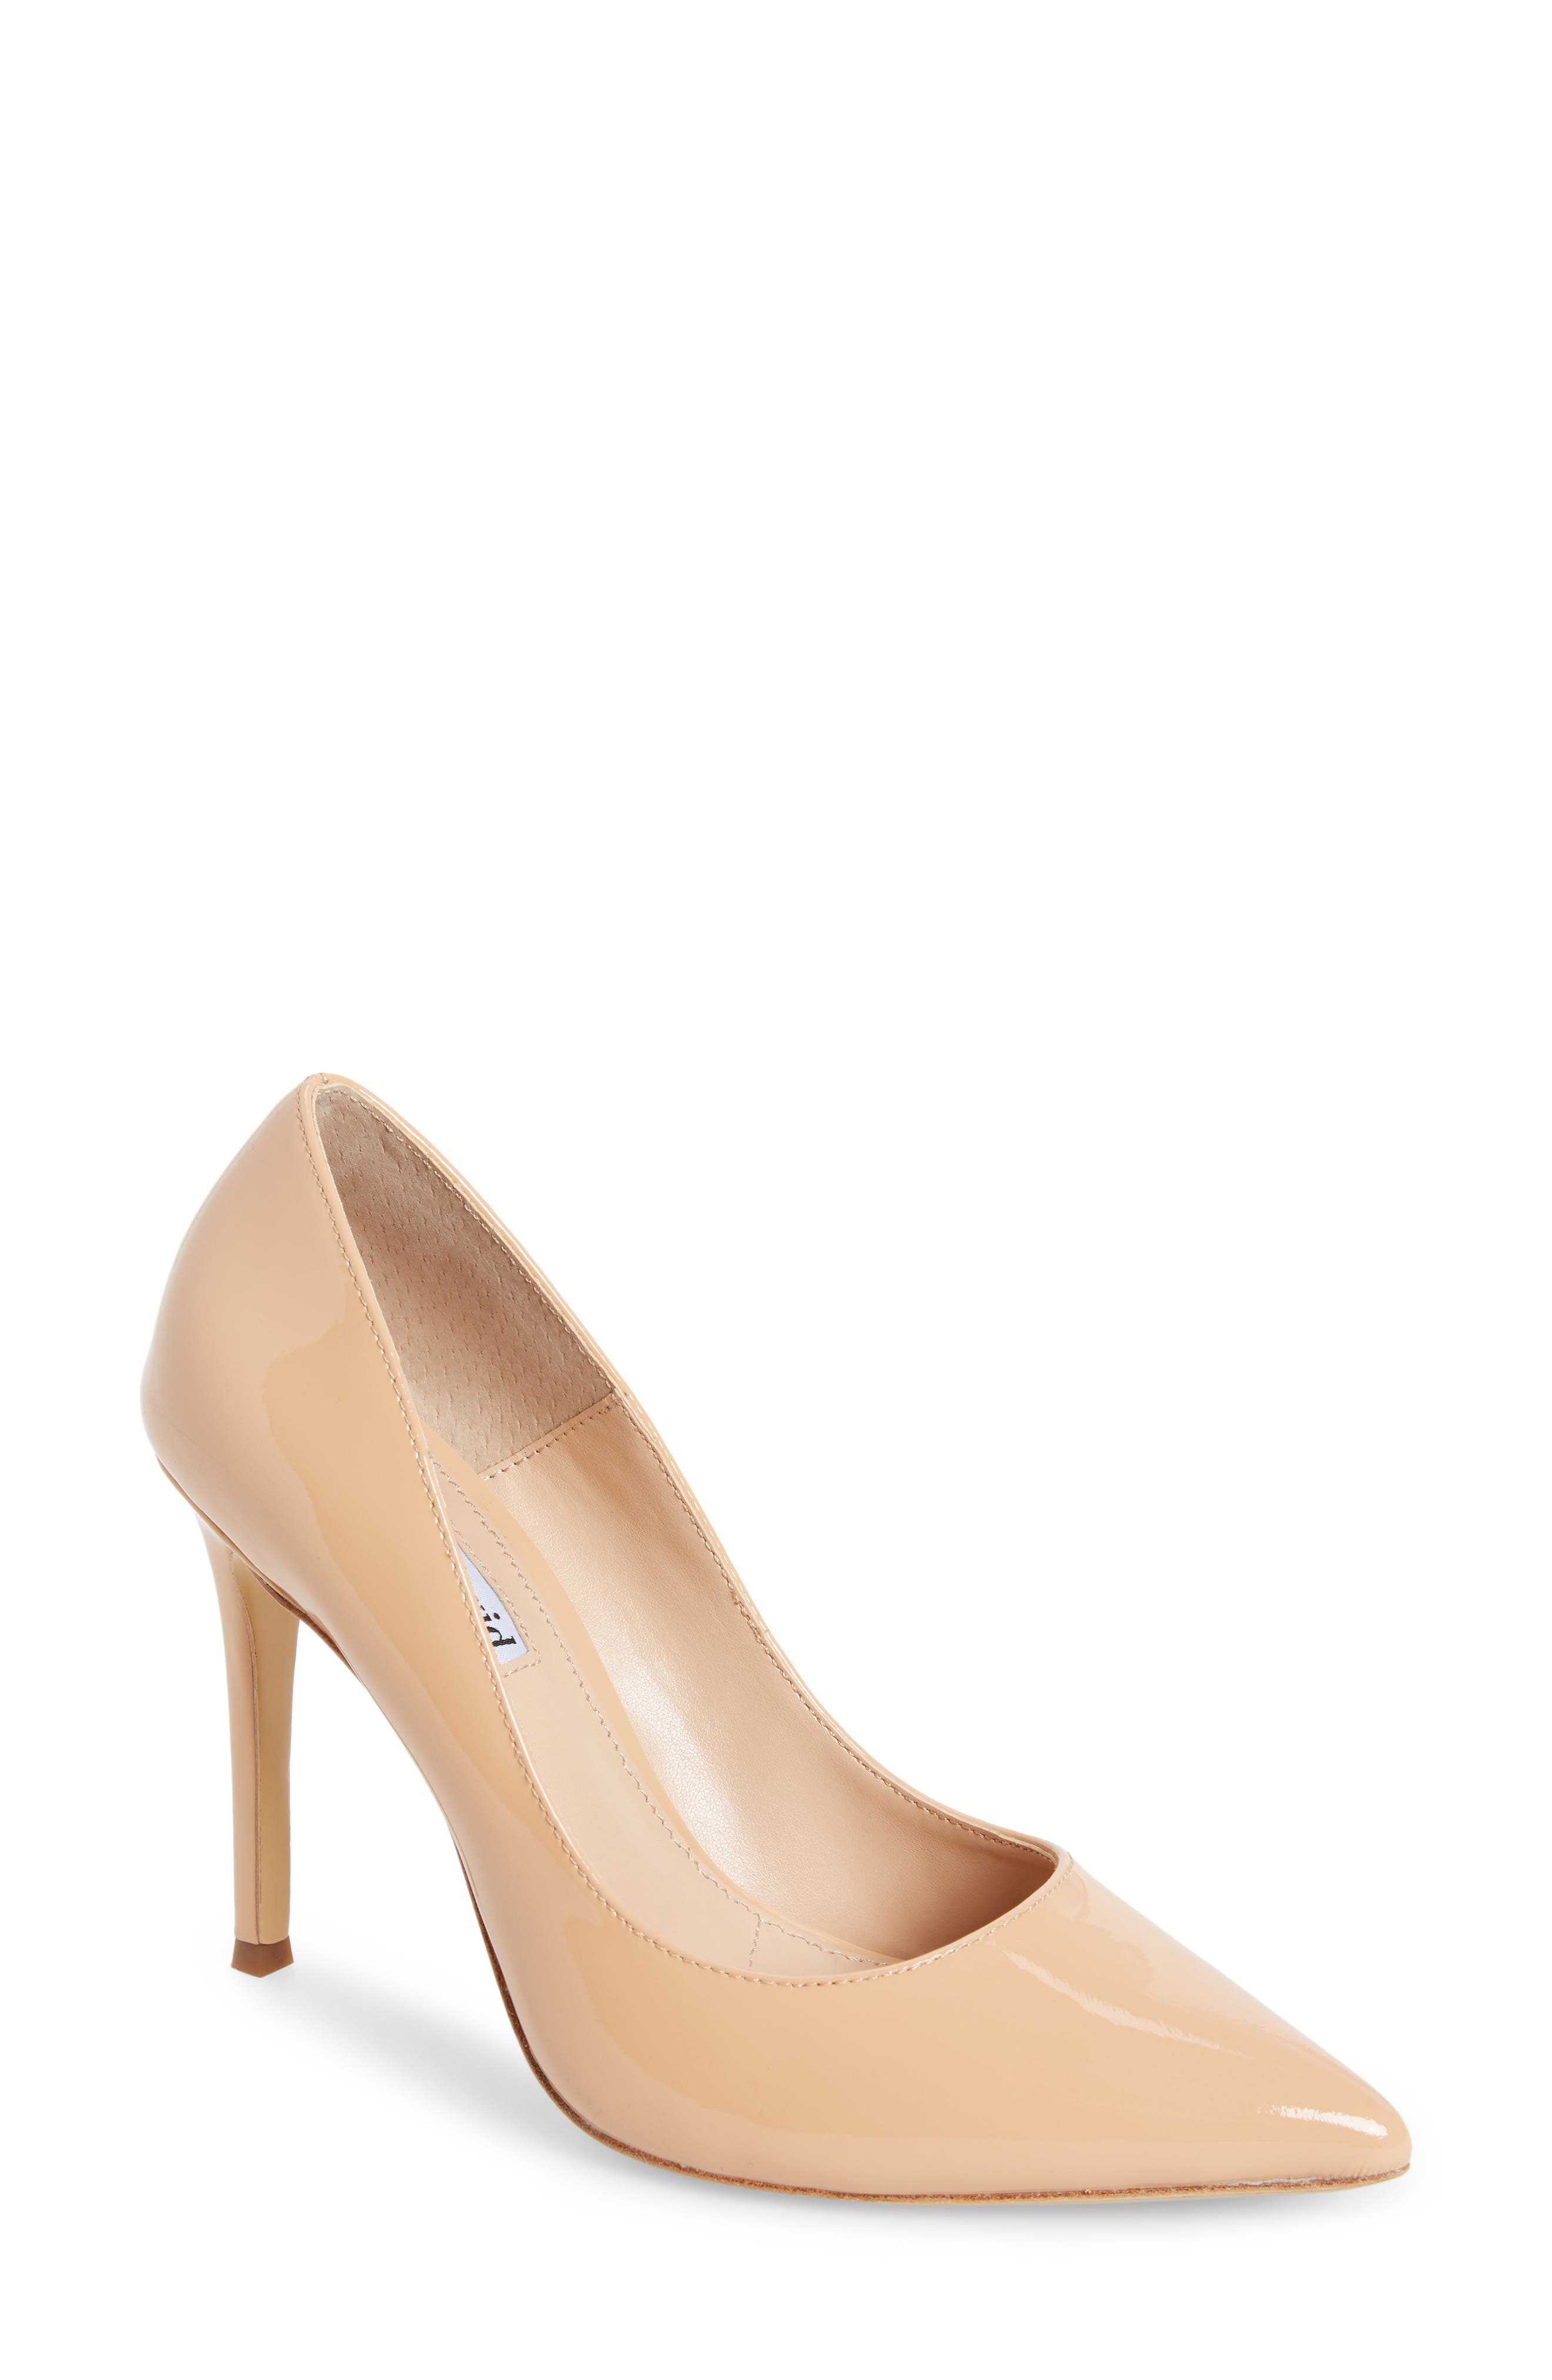 Calessi Pointy Toe Pump,                             Main thumbnail 1, color,                             PETAL PATENT LEATHER